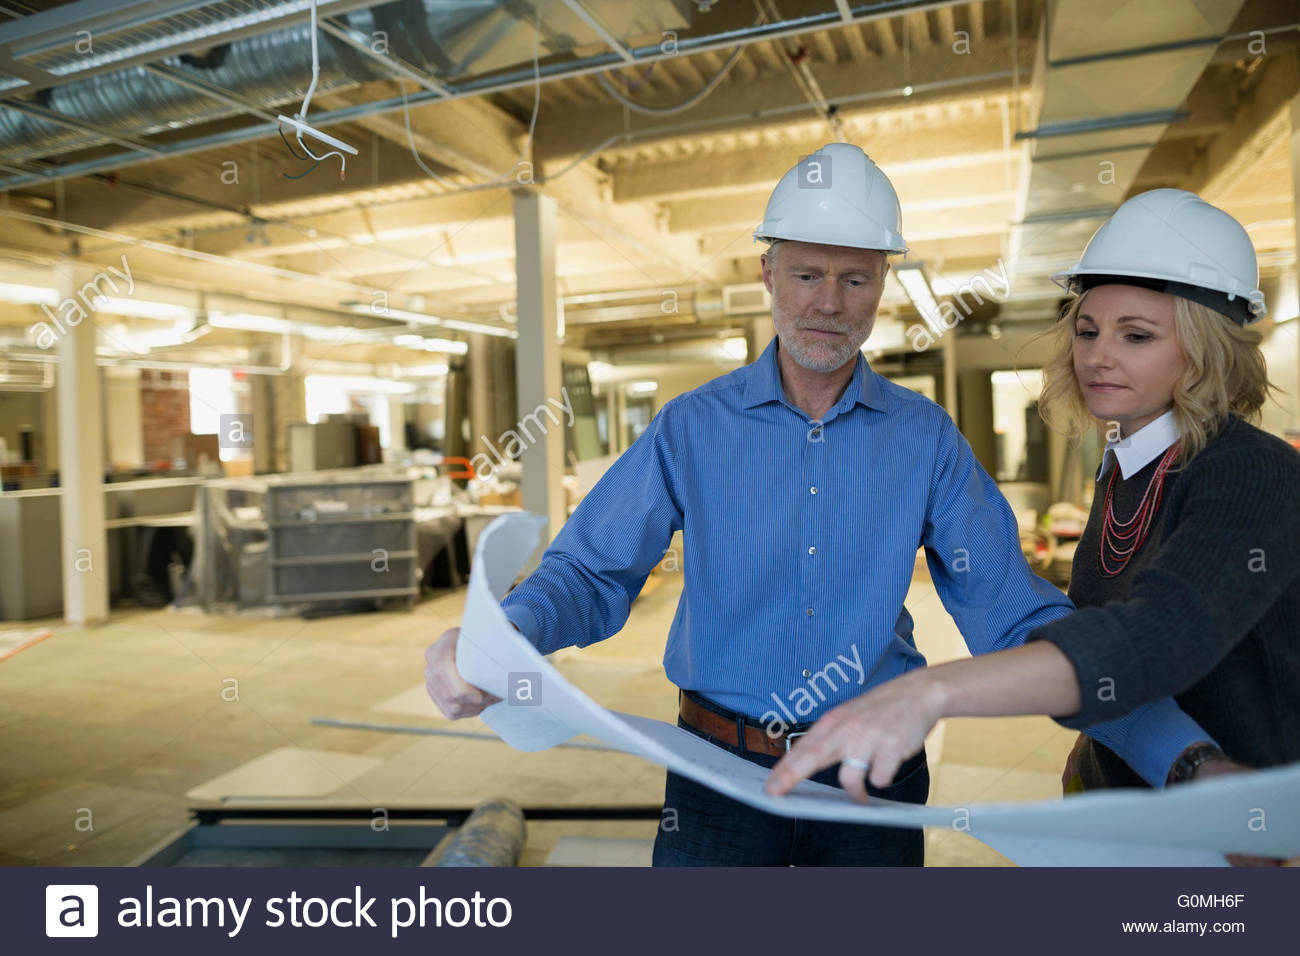 Architect and engineer reviewing blueprints office construction site - Stock Image